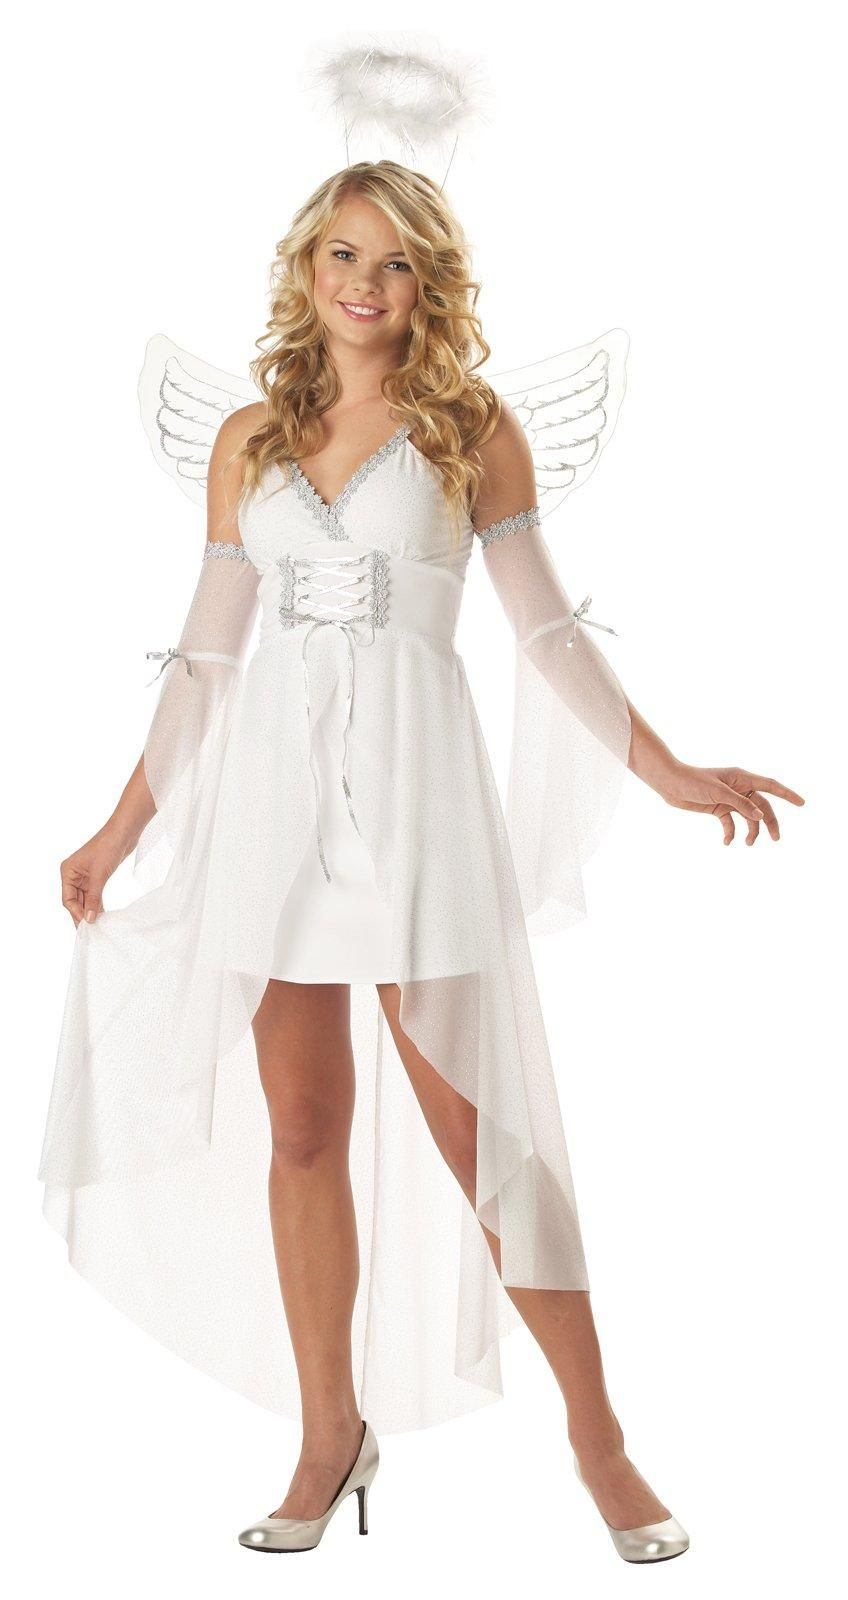 heavens angel adult costume from costumeexpresscom for st jeannie